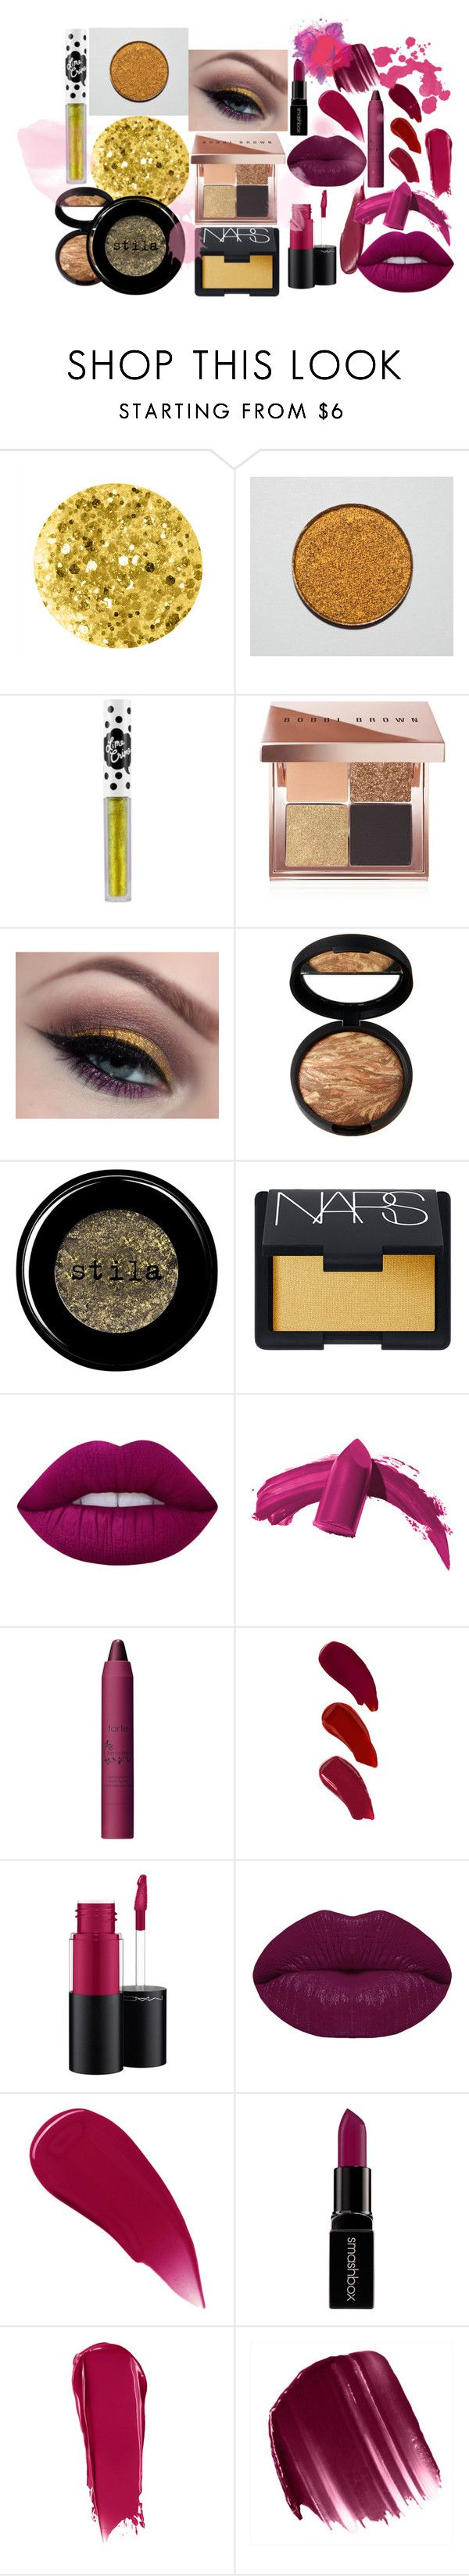 """Golden eyeliner and pink lips"" by misayodele on Polyvore featuring beauté, Anna Sui, Lime Crime, Bobbi Brown Cosmetics, By Terry, Stila, NARS Cosmetics, Elizabeth Arden, tarte et Ellis Faas"